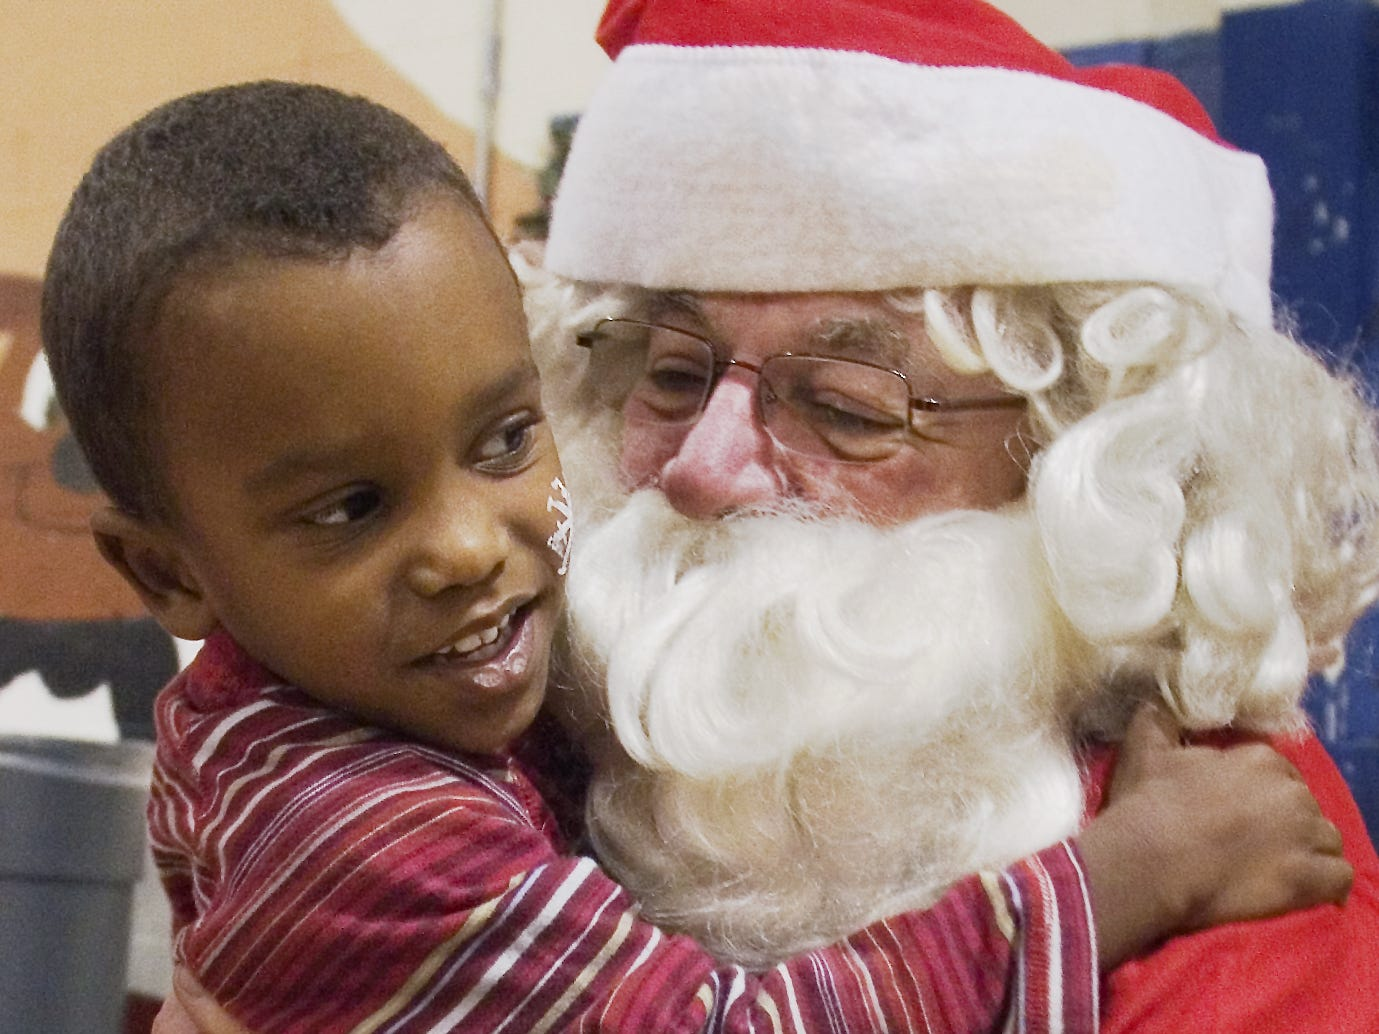 Kih Coleman, 4, of Elmira, hugs Santa during the Christmas party at the Ernie Davis Center in 2007.